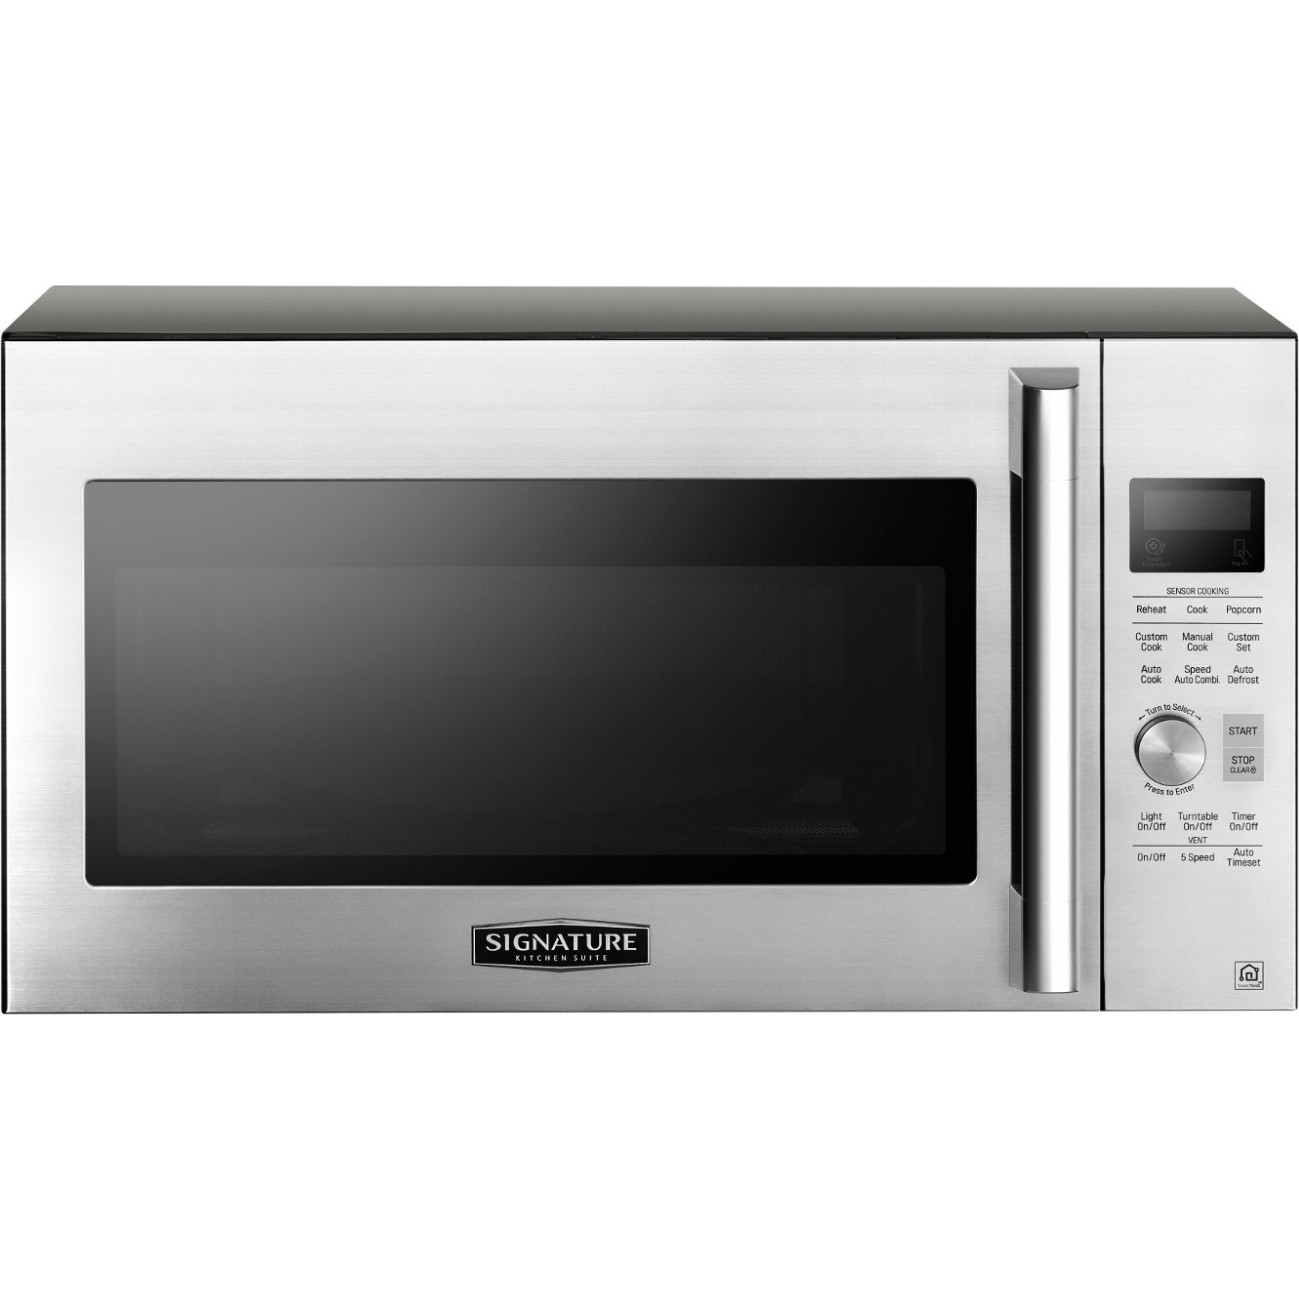 Lg Signature Upmc3084st Over The Range Microwave